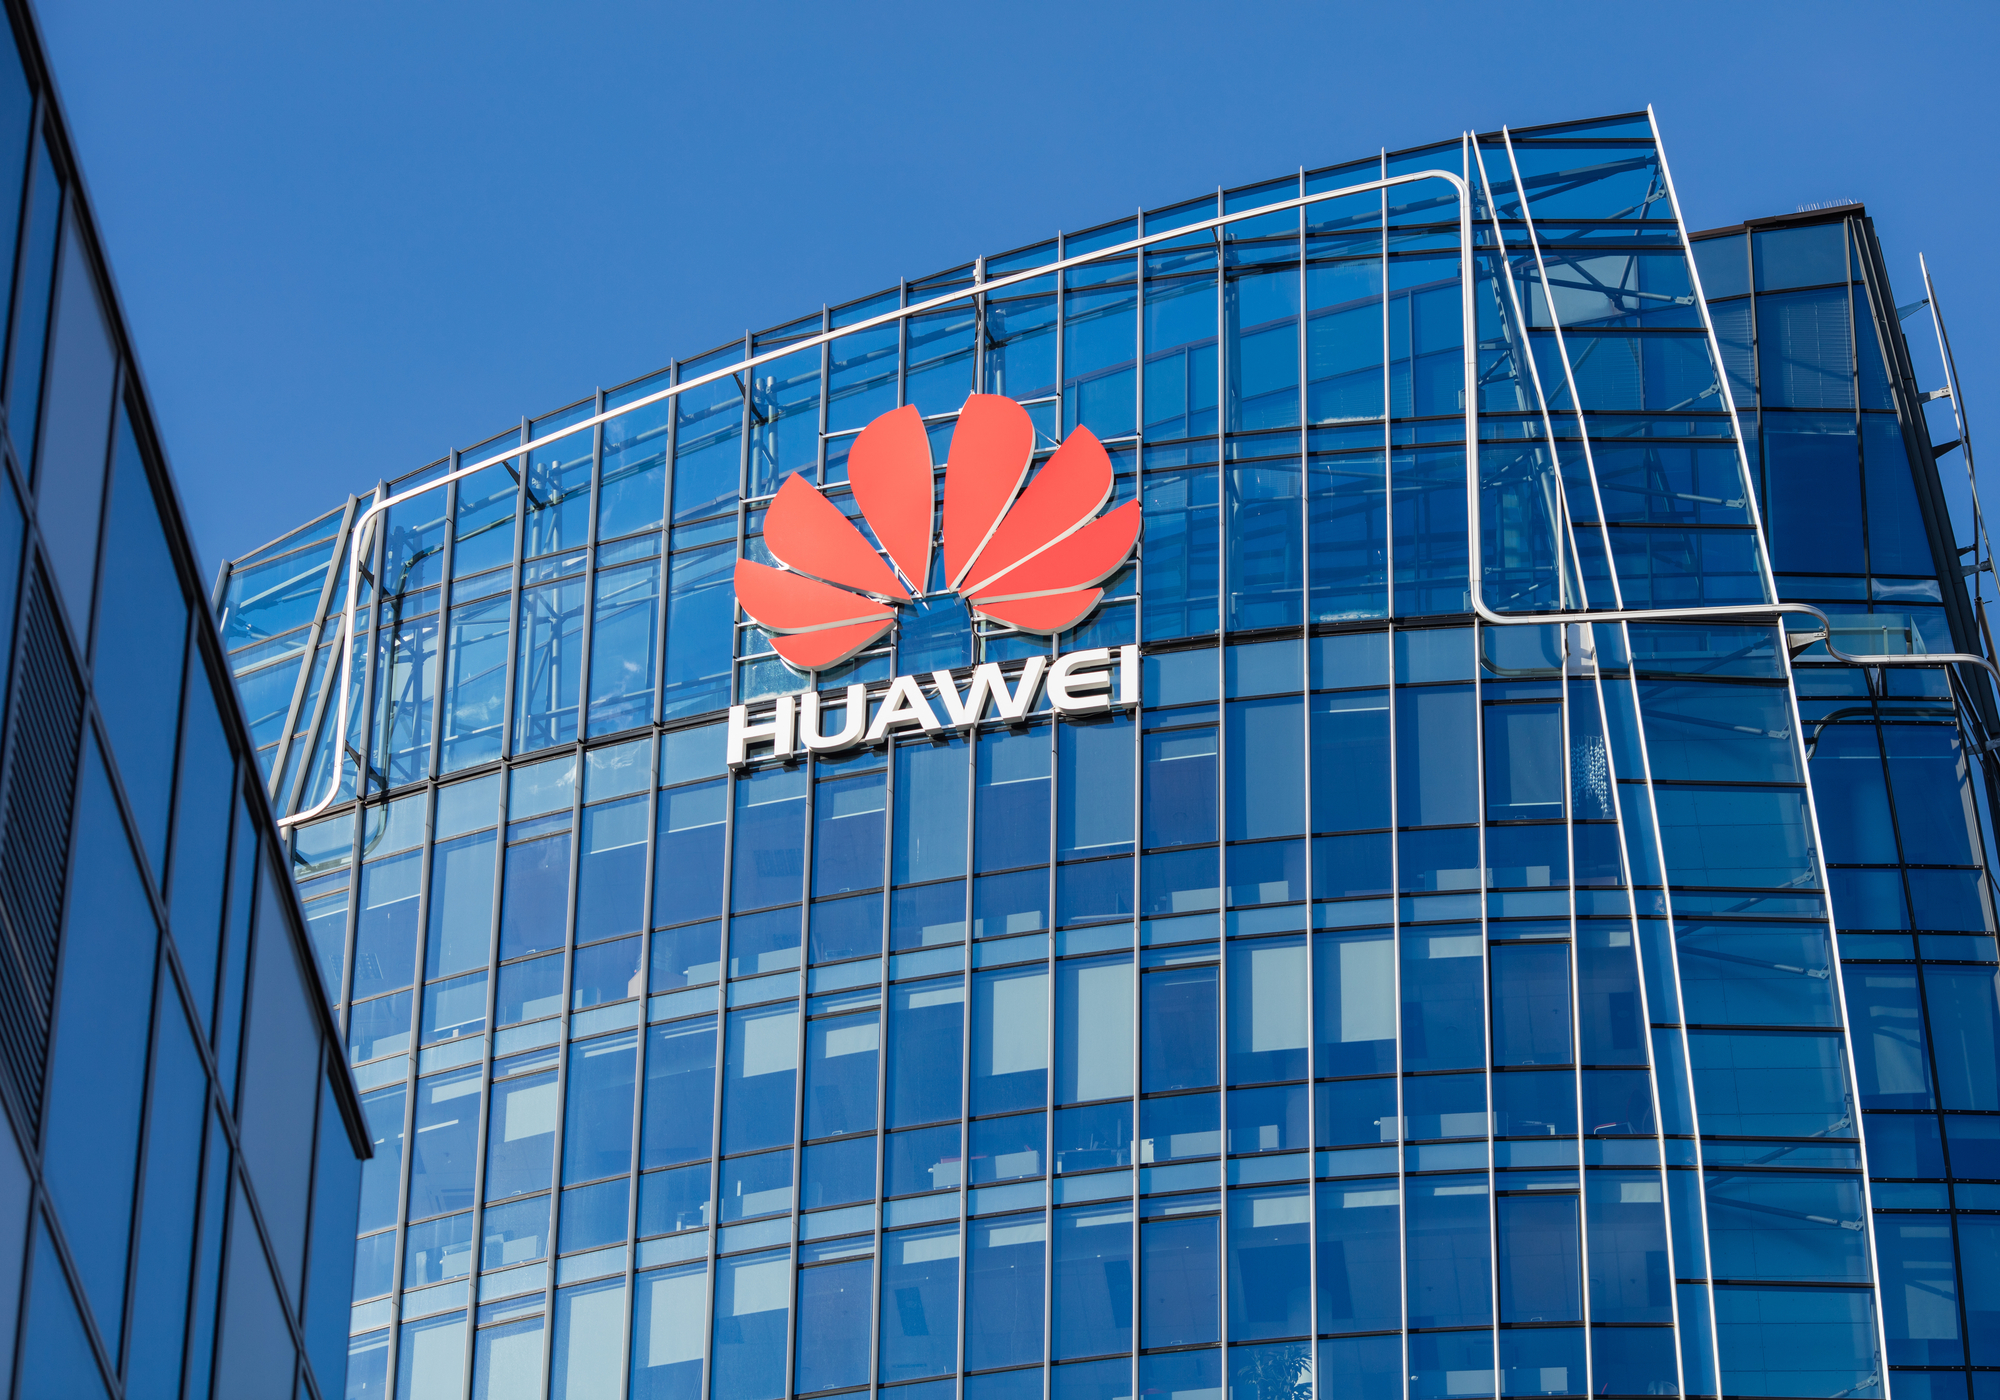 Huawei banned from UK 5G network starting 2021